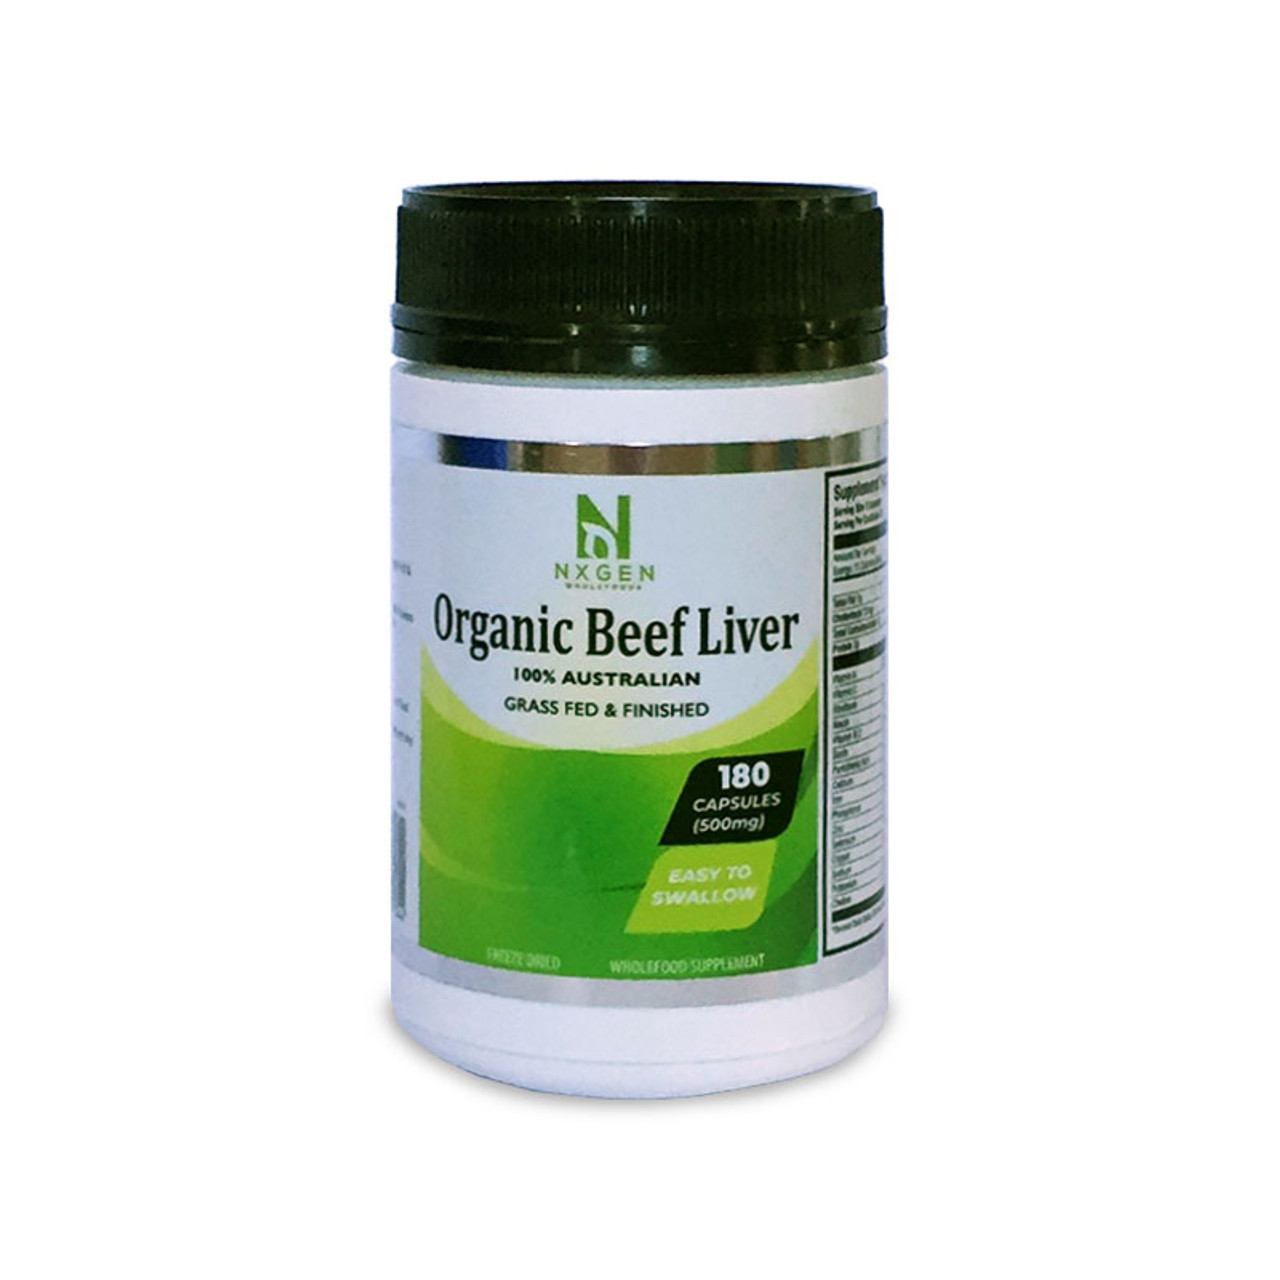 Front view of a bottle of NXGEN 100% Organic Beef Liver from Australian Grass-fed cows.